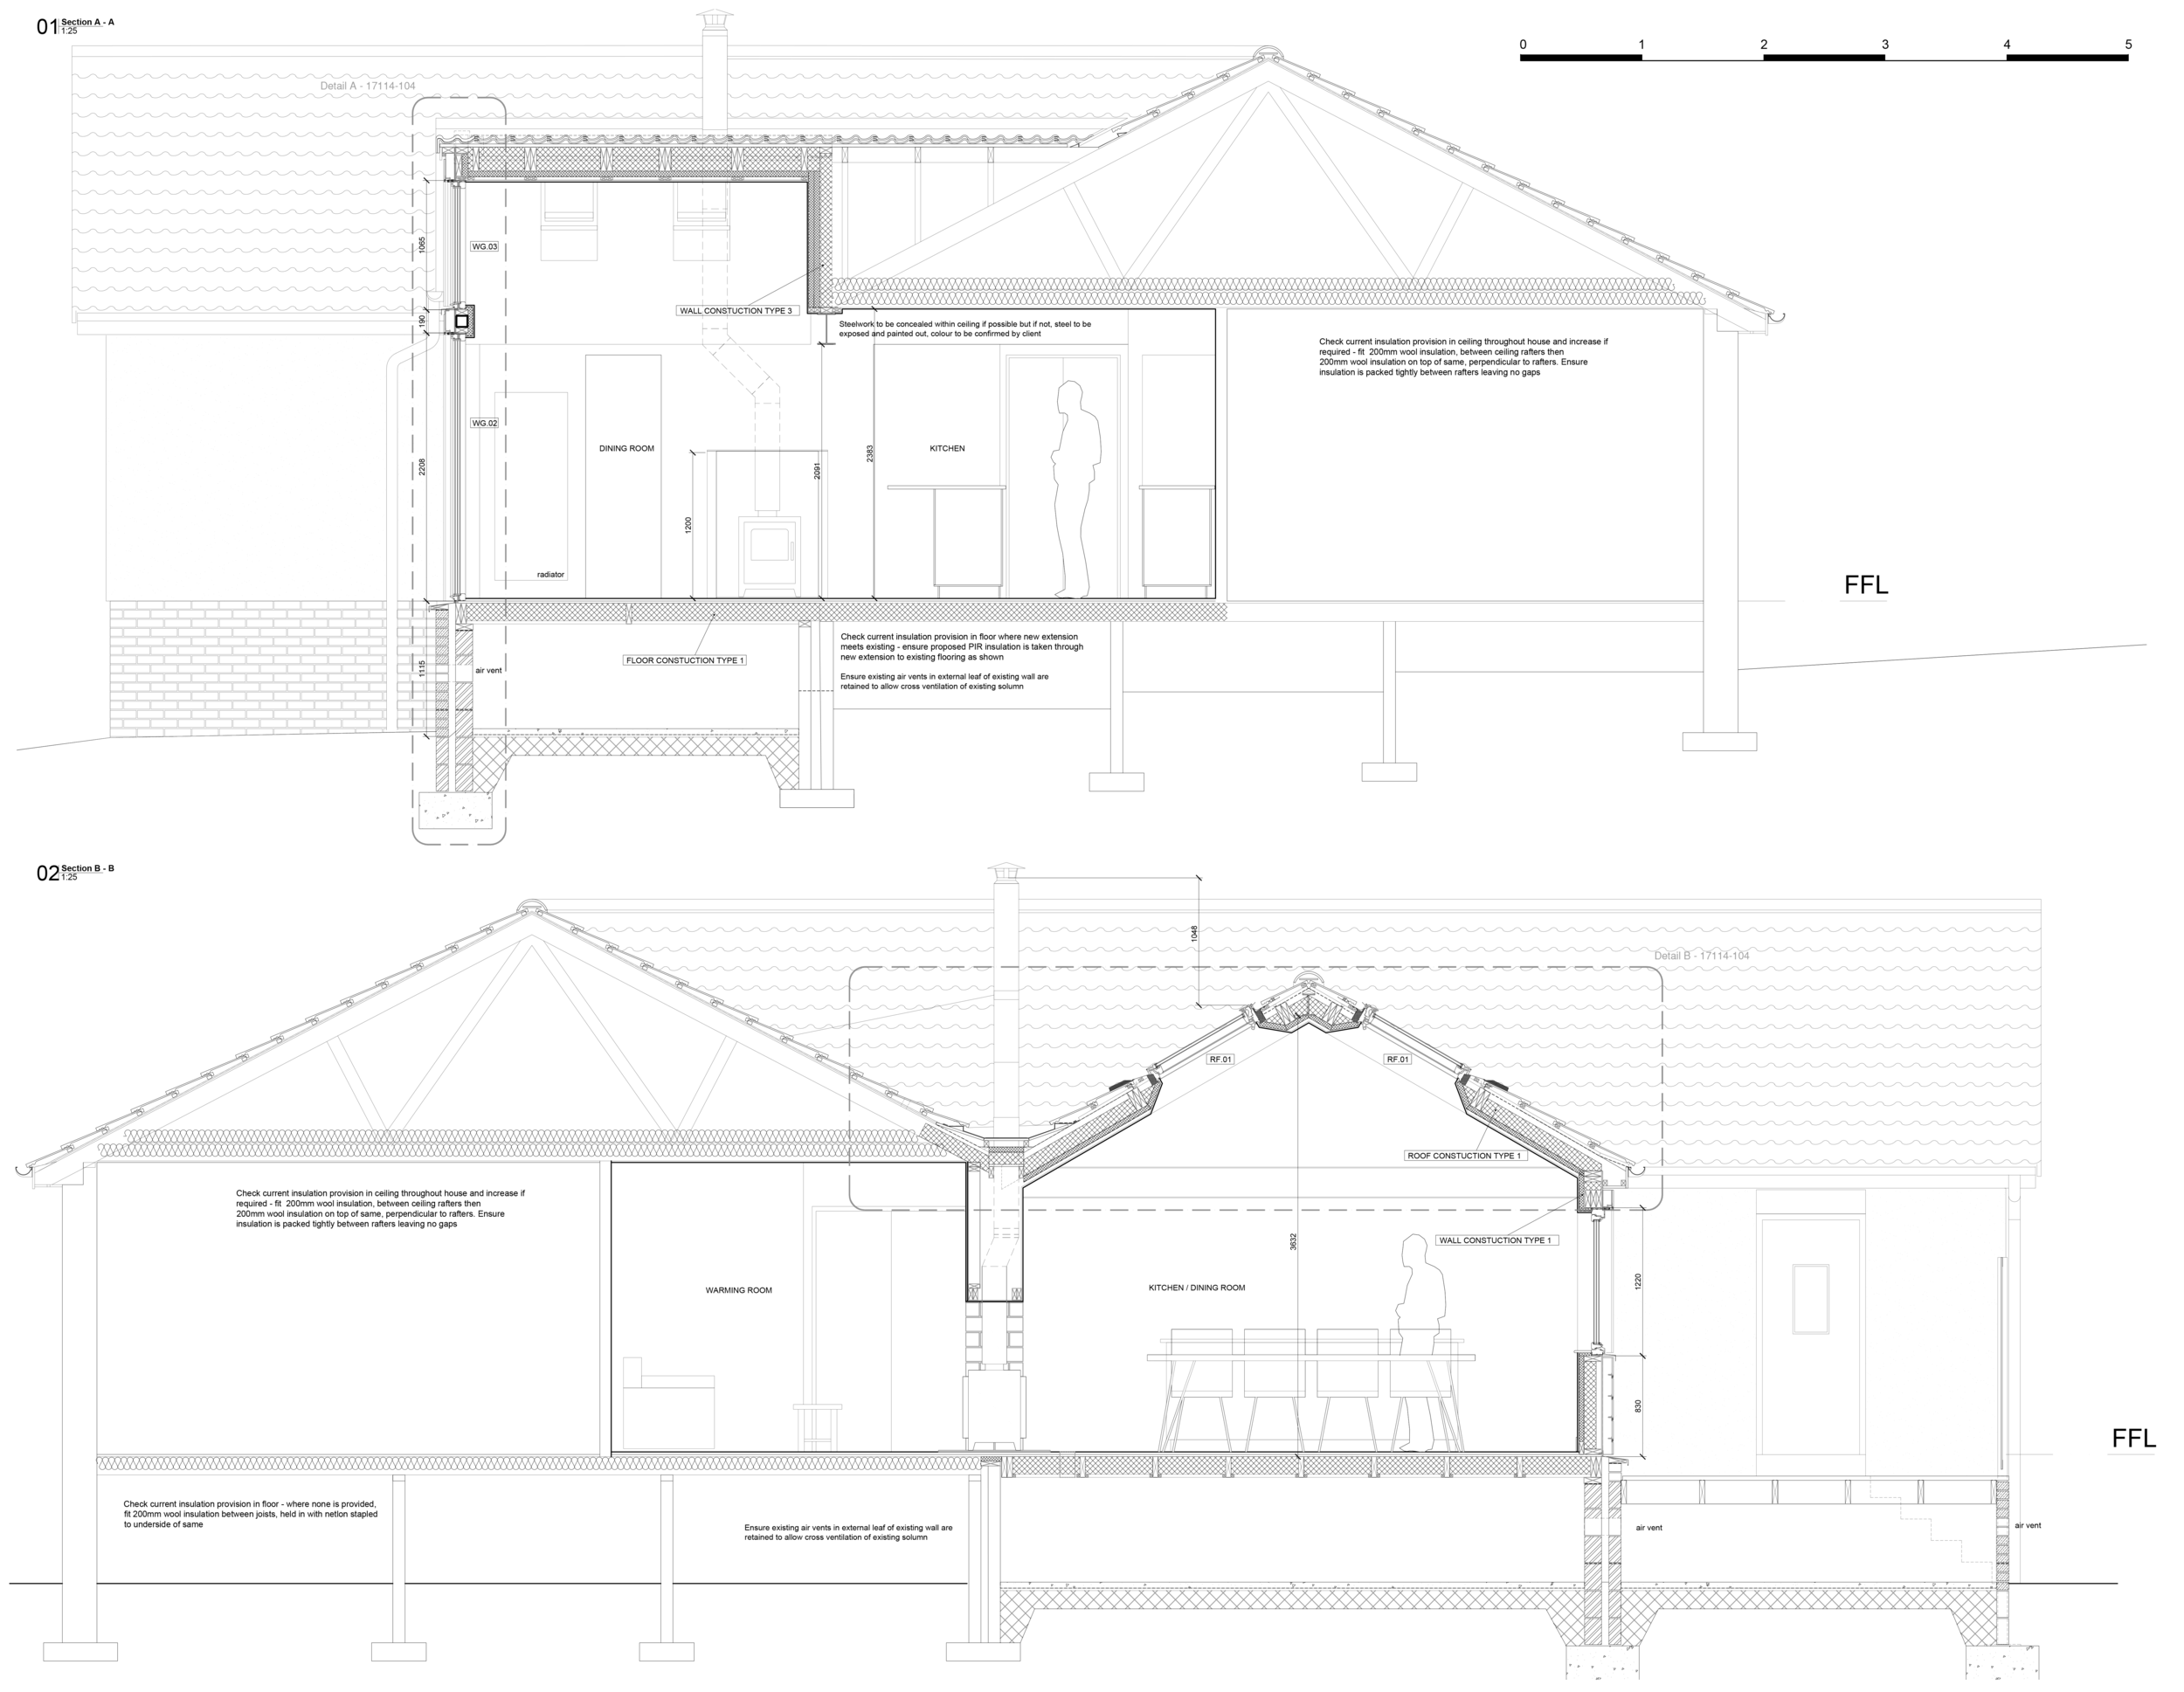 Proposed Section drawings as part of Building Warrant package